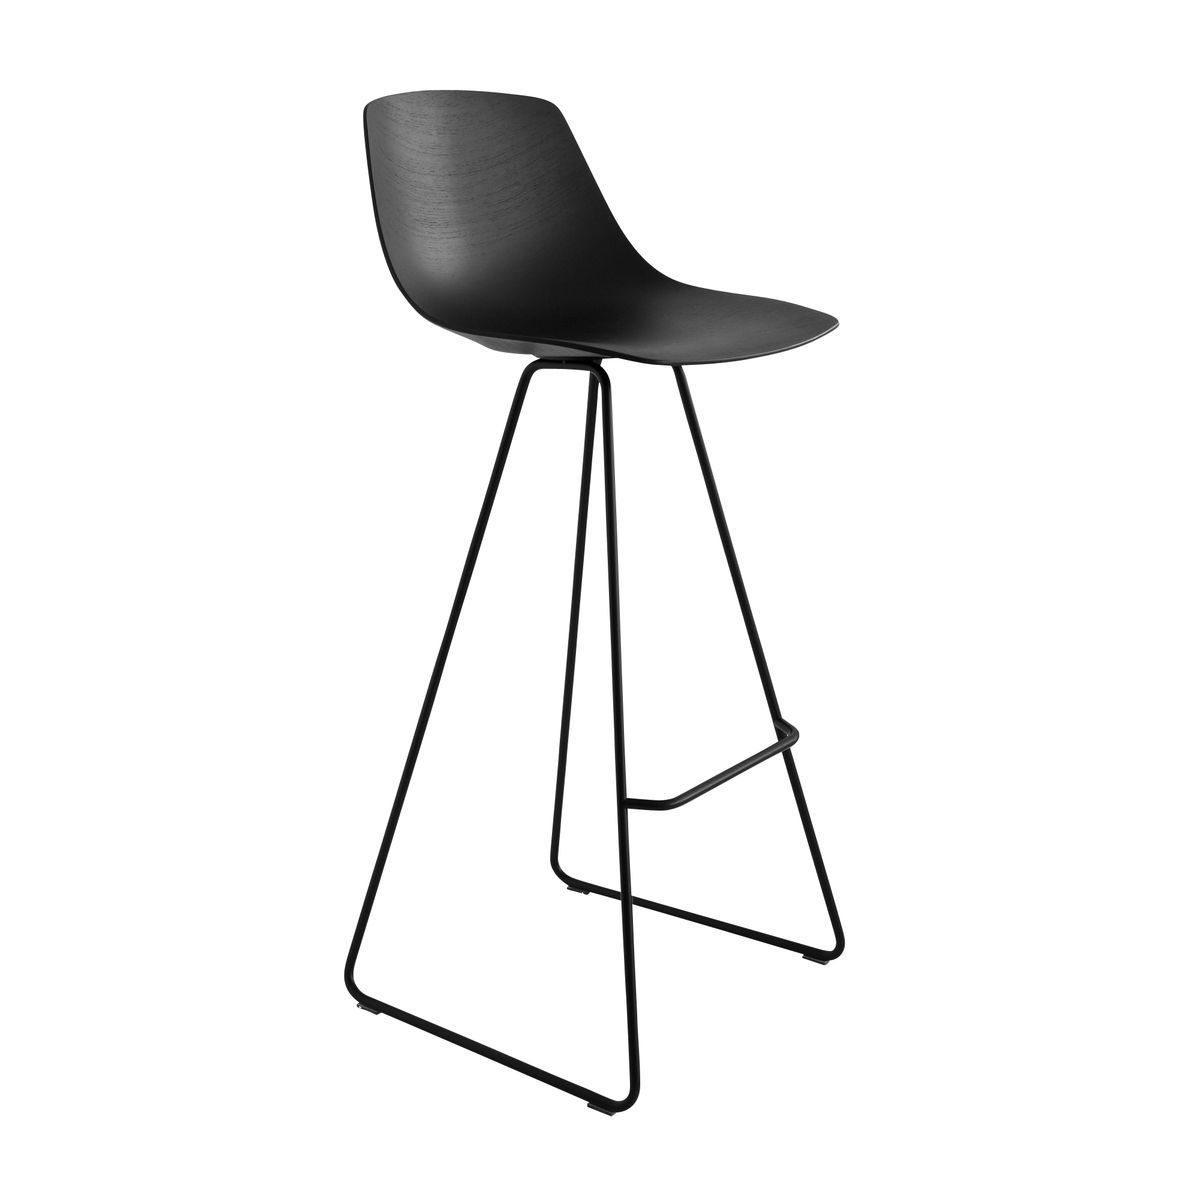 Miunn bar stool skid legs black la palma for Exclusive barhocker